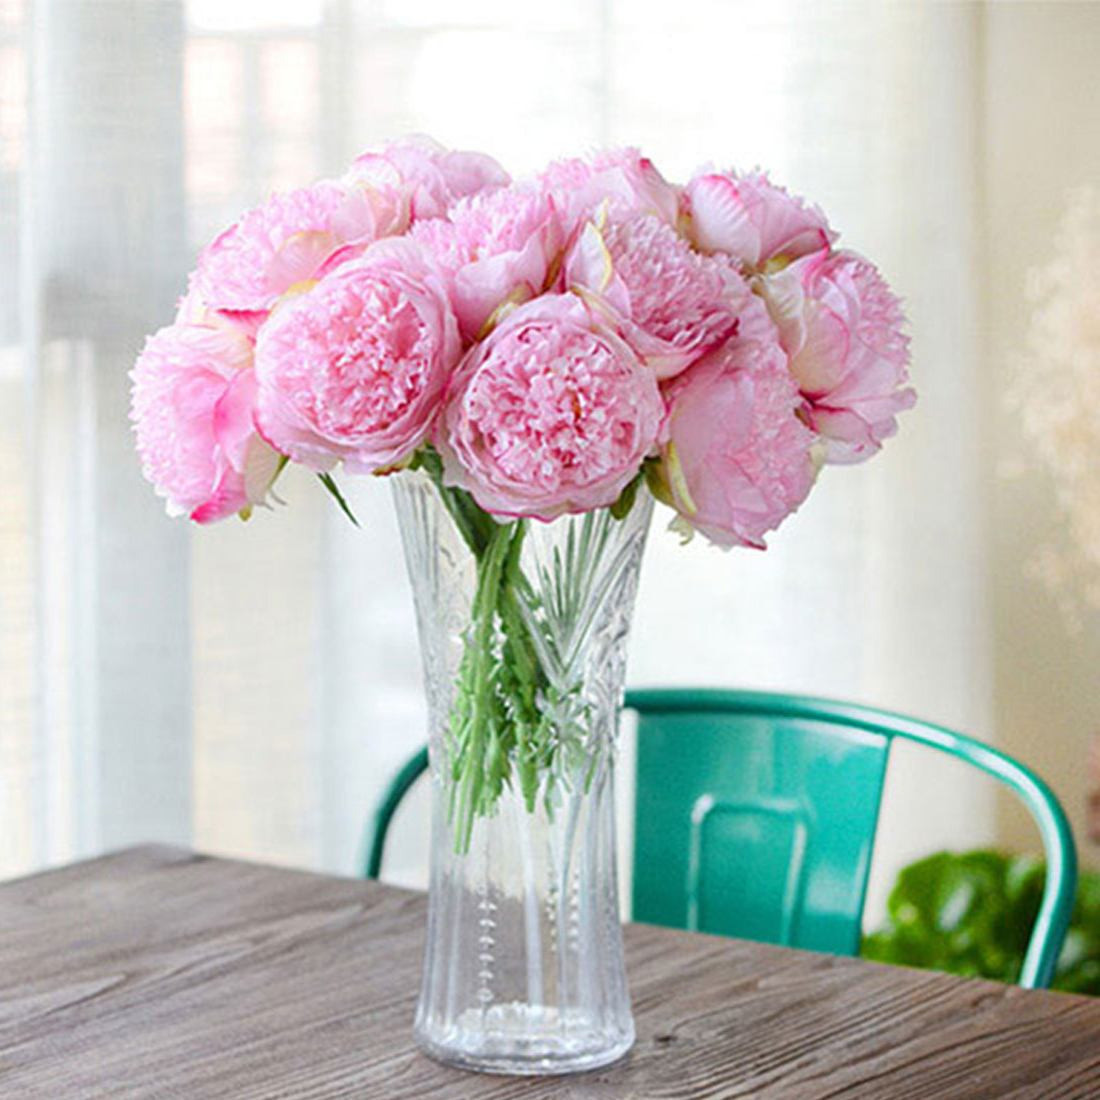 fake flower vase ideas of flowers similar to peonies il fullxfull 8mg8h vases fake peonies in with regard to flowers similar to peonies il fullxfull 8mg8h vases fake peonies in vase zoomi 0d design ideas